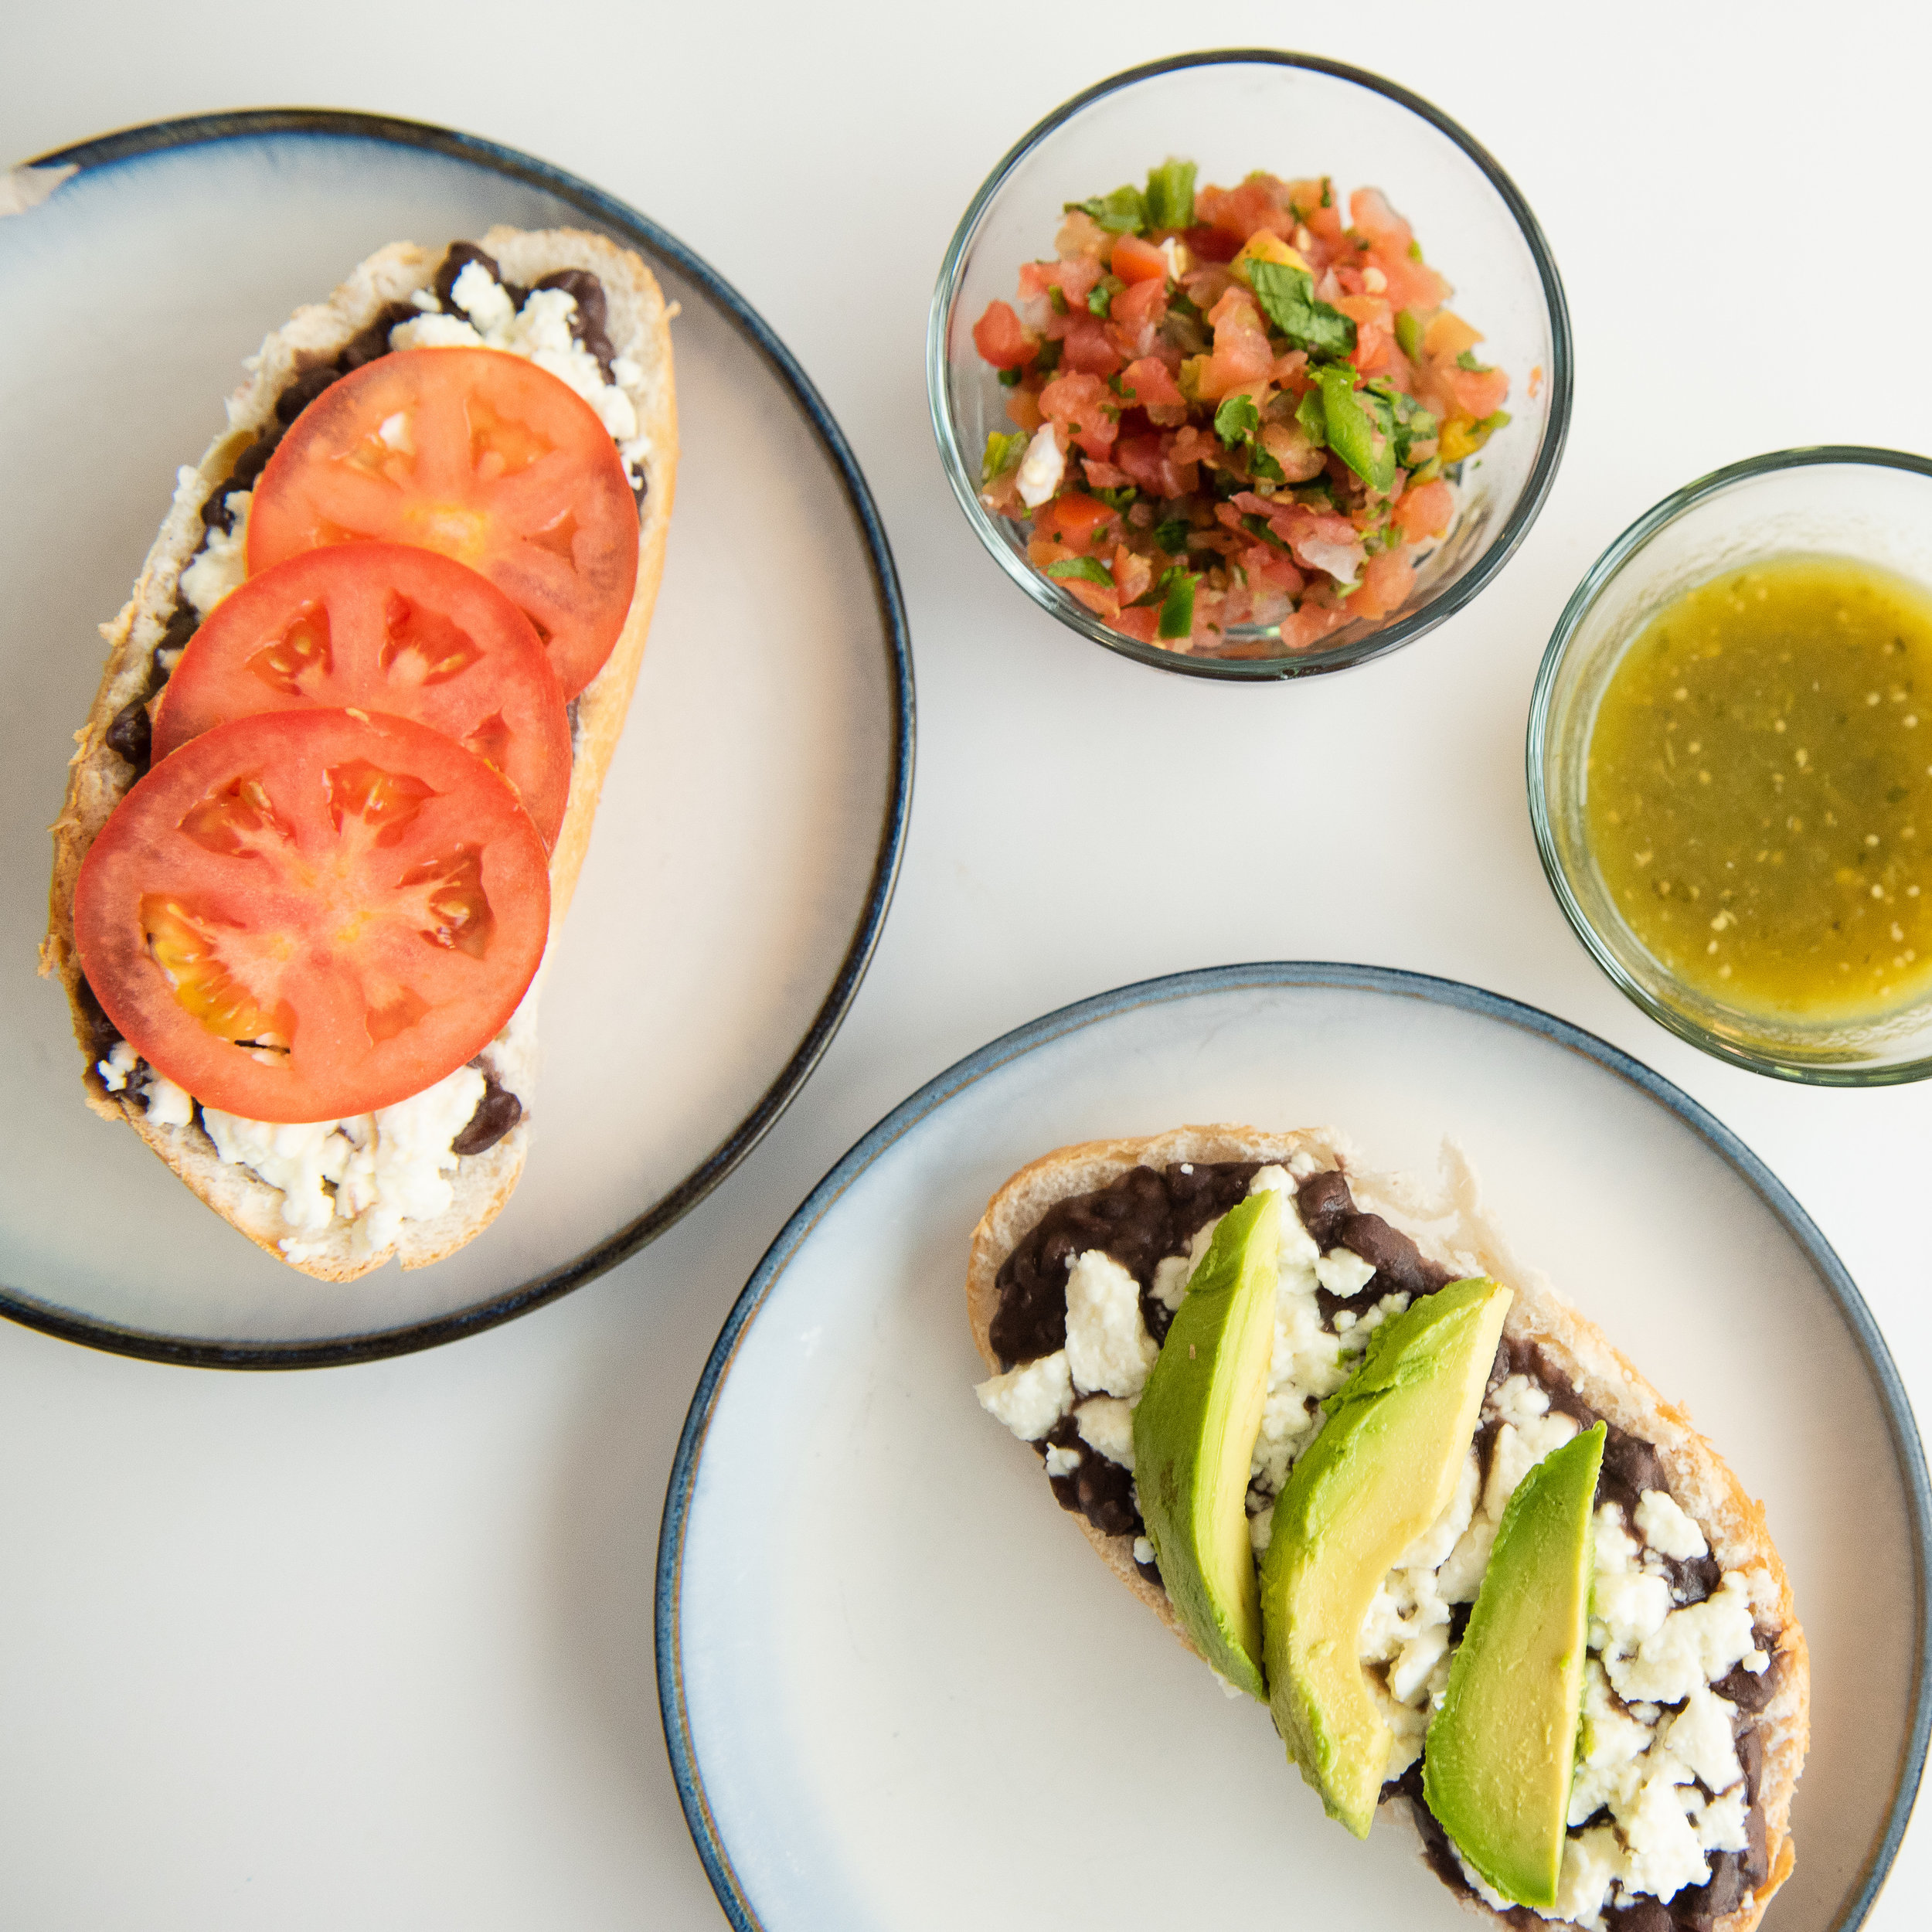 molletes-mexican-food-snack-lunch-school-quick-meal-5.jpg